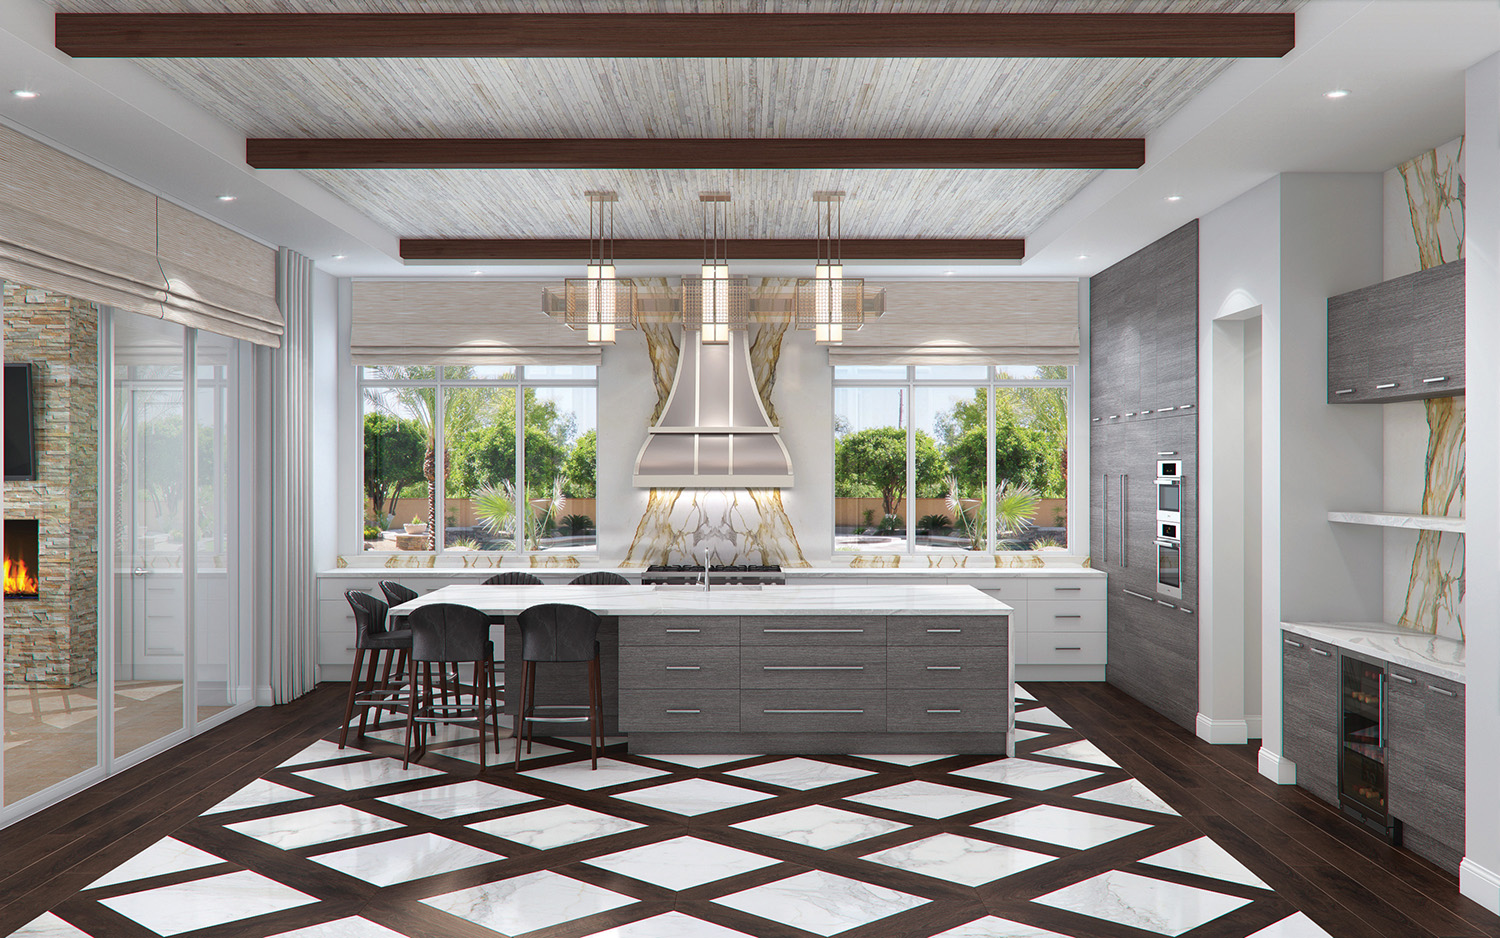 Details like the wood and marble diamond floors and the ceiling details make this photo-real rendering come to life. These designs are used to show clients exactly what their kitchen will look like alleviating the fear of the unknown as we embark on their design process.